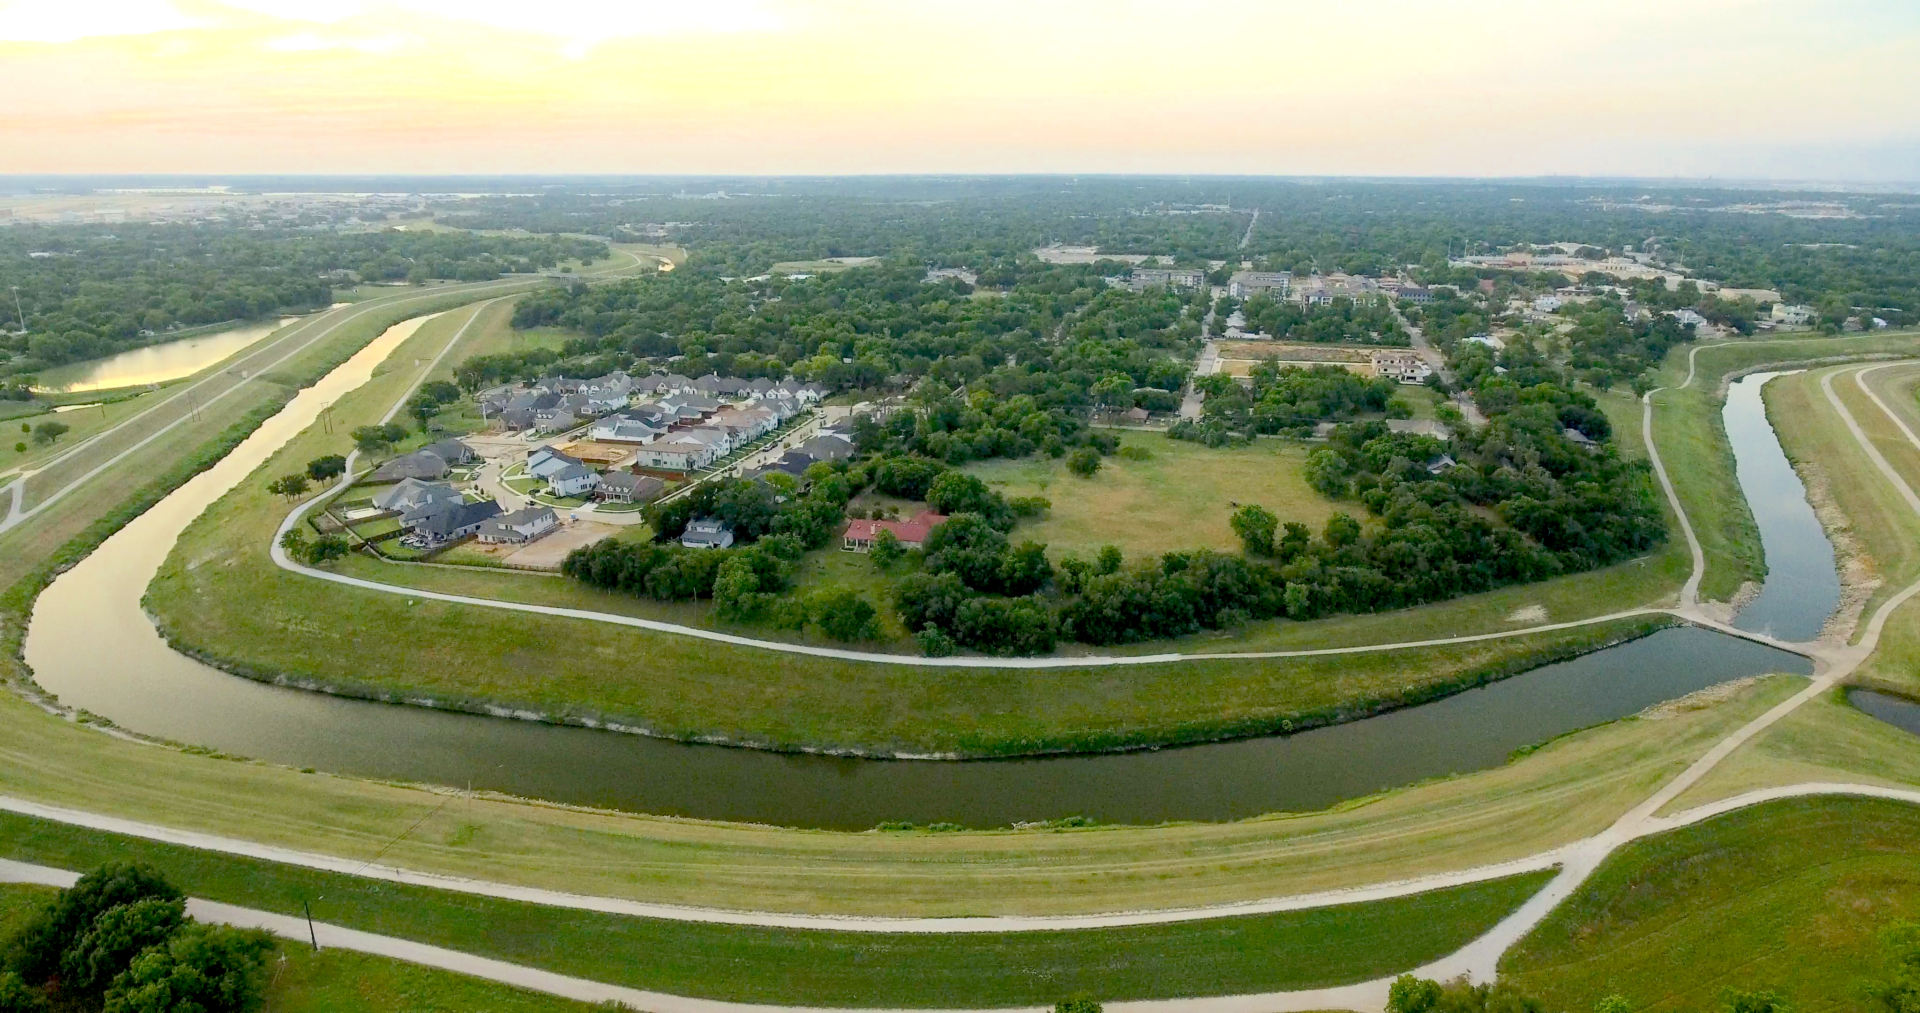 Aerial view of the horseshoe bend of the Trinity River with numerous green trees and developments in the background